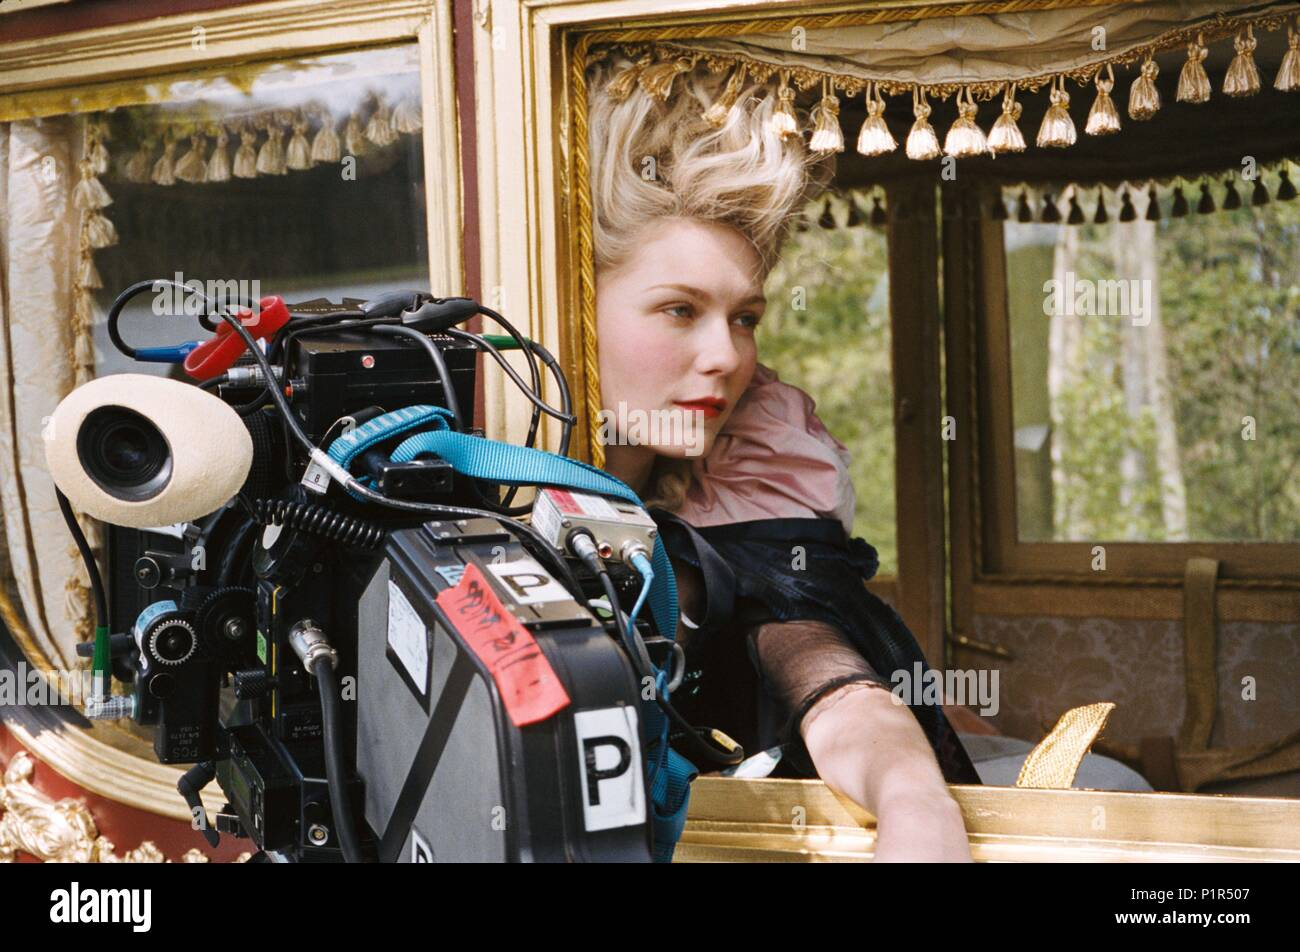 Original Film Title: MARIE ANTOINETTE.  English Title: MARIE ANTOINETTE.  Film Director: SOFIA COPPOLA.  Year: 2006.  Stars: KIRSTEN DUNST. Credit: COLUMBIA PICTURES CORPORATION/AMERICAN ZOETROPE / Album Stock Photo